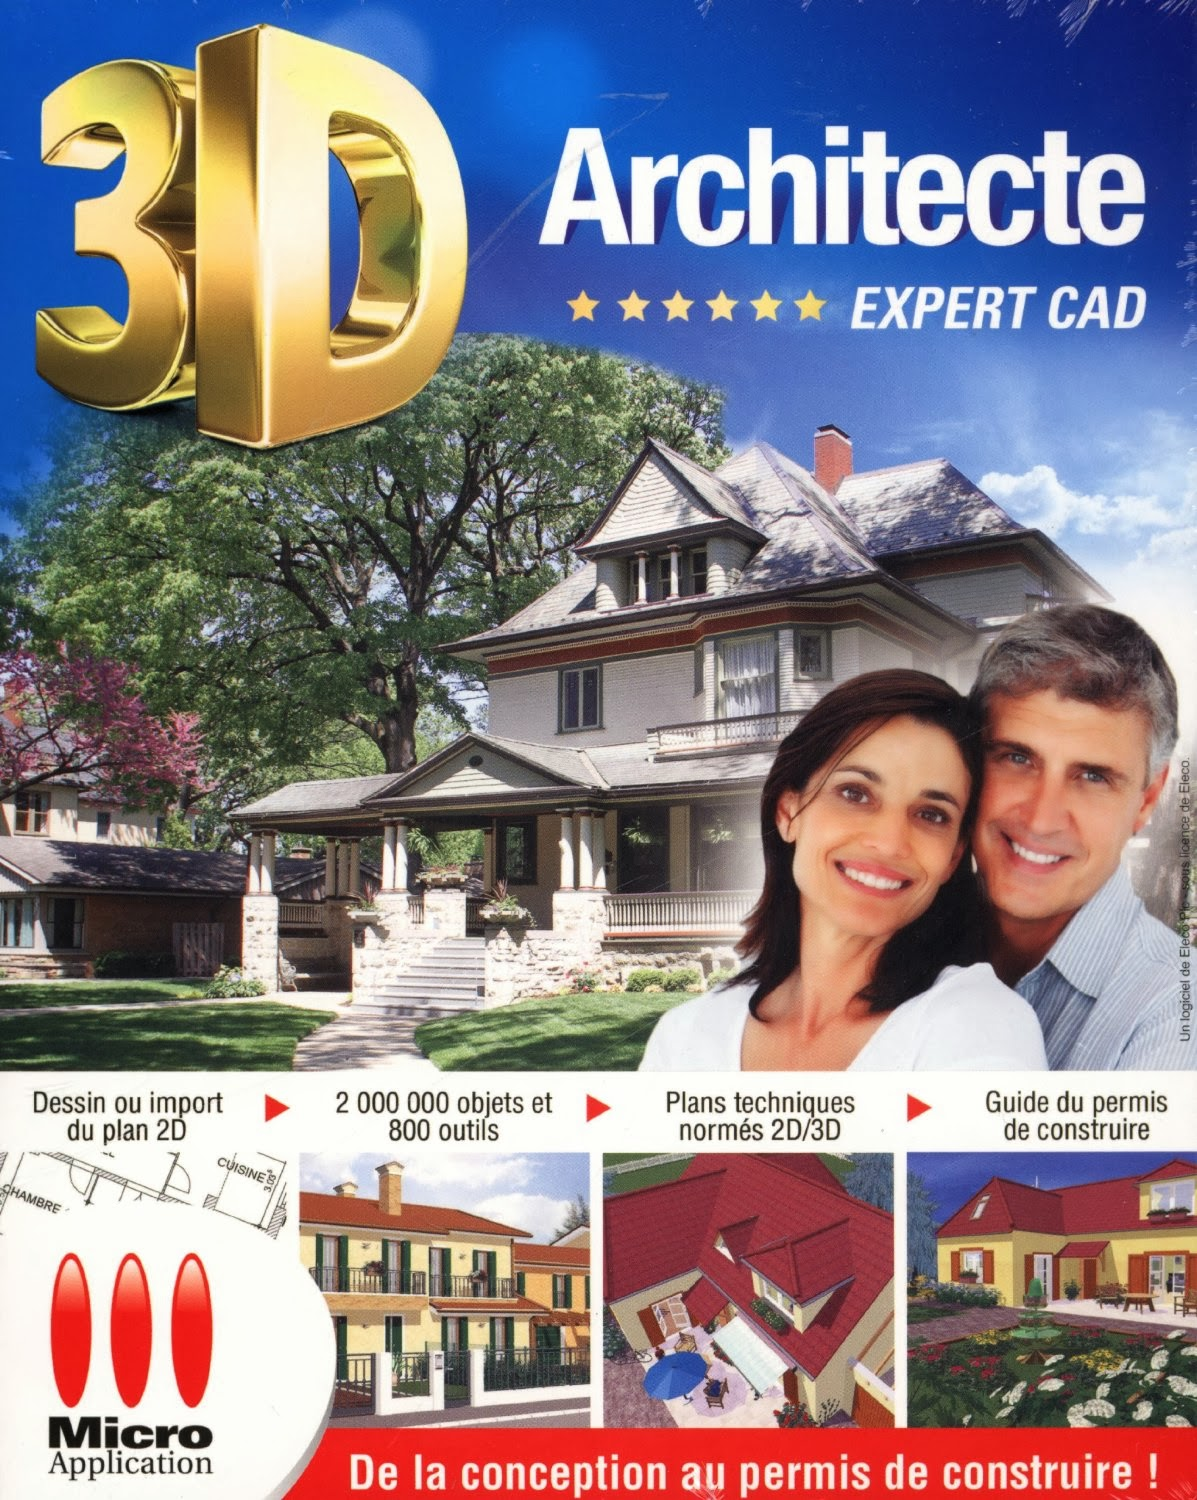 3d architecte expert cad 14 keygen crack for Architecte 3d avec crack